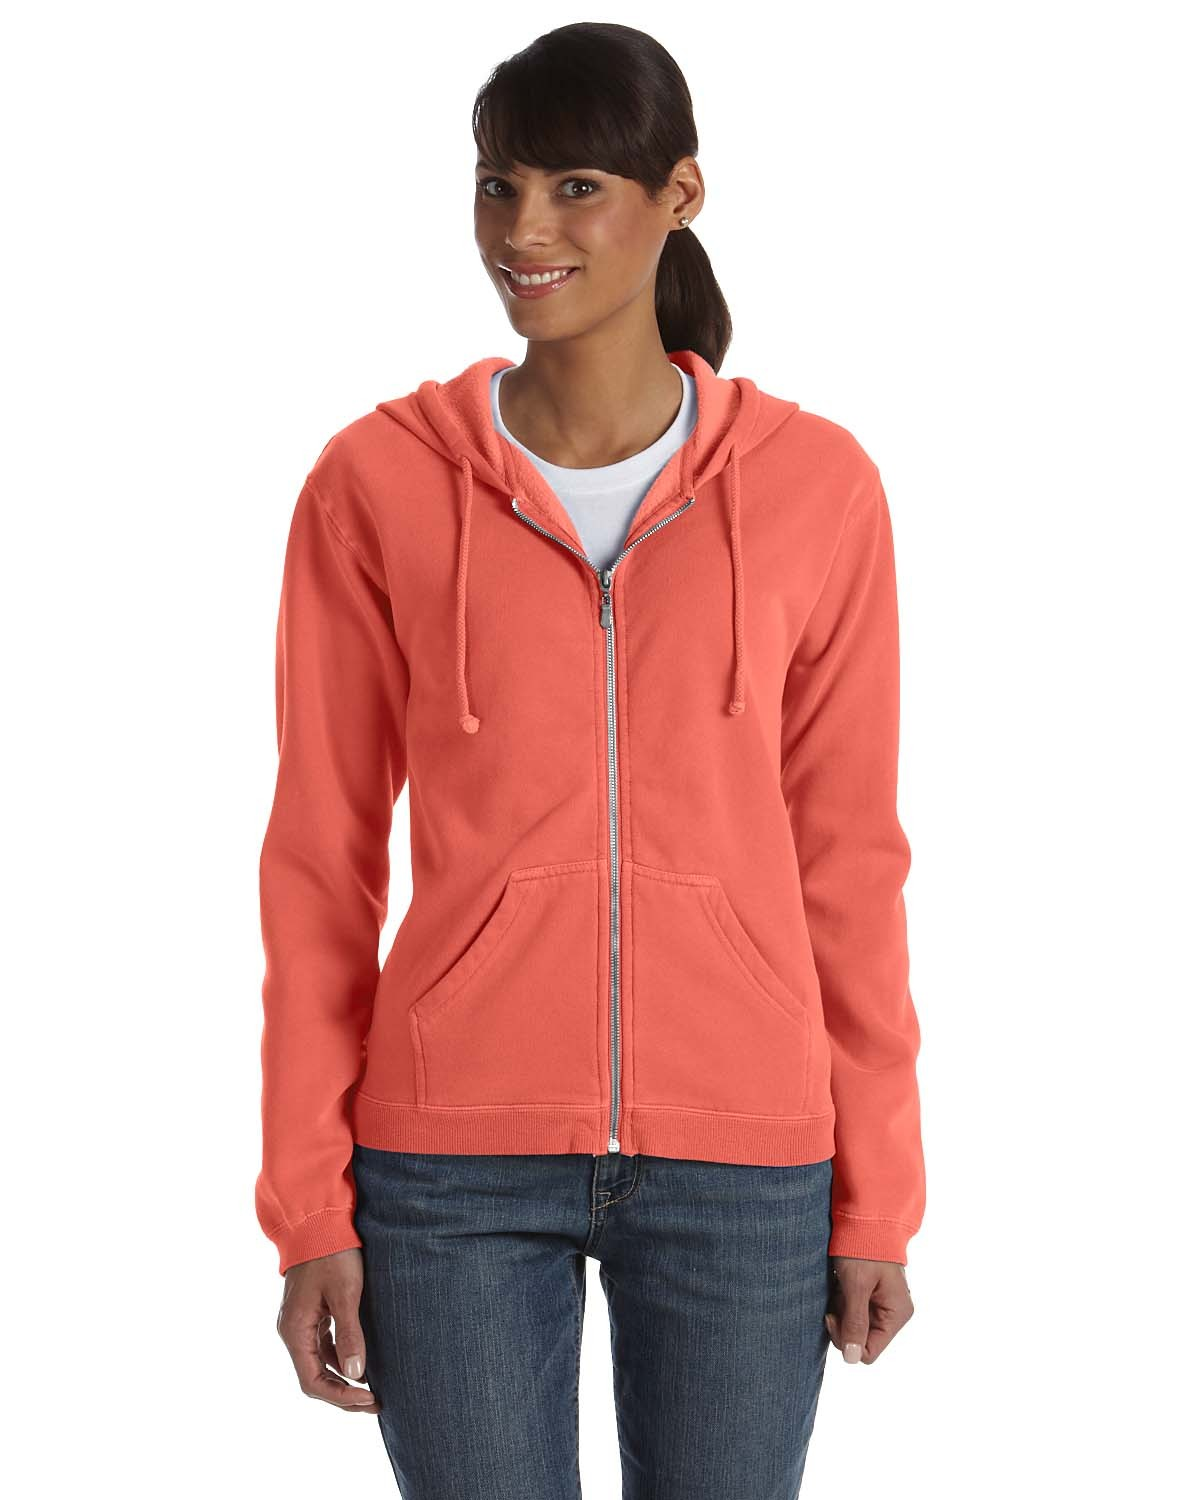 C1598 Comfort Colors BRIGHT SALMON